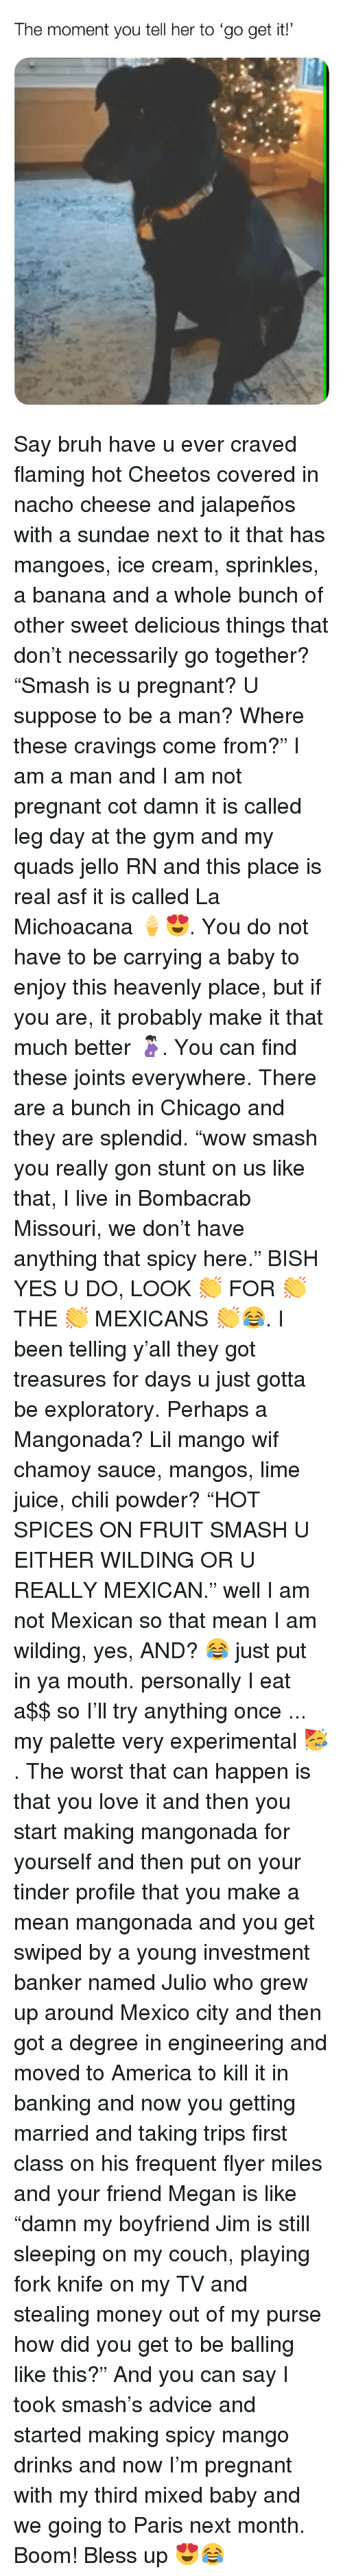 """jello: The moment you tell her to 'go get it! Say bruh have u ever craved flaming hot Cheetos covered in nacho cheese and jalapeños with a sundae next to it that has mangoes, ice cream, sprinkles, a banana and a whole bunch of other sweet delicious things that don't necessarily go together? """"Smash is u pregnant? U suppose to be a man? Where these cravings come from?"""" I am a man and I am not pregnant cot damn it is called leg day at the gym and my quads jello RN and this place is real asf it is called La Michoacana 🍦😍. You do not have to be carrying a baby to enjoy this heavenly place, but if you are, it probably make it that much better 🤰🏻. You can find these joints everywhere. There are a bunch in Chicago and they are splendid. """"wow smash you really gon stunt on us like that, I live in Bombacrab Missouri, we don't have anything that spicy here."""" BISH YES U DO, LOOK 👏 FOR 👏 THE 👏 MEXICANS 👏😂. I been telling y'all they got treasures for days u just gotta be exploratory. Perhaps a Mangonada? Lil mango wif chamoy sauce, mangos, lime juice, chili powder? """"HOT SPICES ON FRUIT SMASH U EITHER WILDING OR U REALLY MEXICAN."""" well I am not Mexican so that mean I am wilding, yes, AND? 😂 just put in ya mouth. personally I eat a$$ so I'll try anything once ... my palette very experimental 🥳. The worst that can happen is that you love it and then you start making mangonada for yourself and then put on your tinder profile that you make a mean mangonada and you get swiped by a young investment banker named Julio who grew up around Mexico city and then got a degree in engineering and moved to America to kill it in banking and now you getting married and taking trips first class on his frequent flyer miles and your friend Megan is like """"damn my boyfriend Jim is still sleeping on my couch, playing fork knife on my TV and stealing money out of my purse how did you get to be balling like this?"""" And you can say I took smash's advice and started making spicy mango drinks and now I'm pregna"""